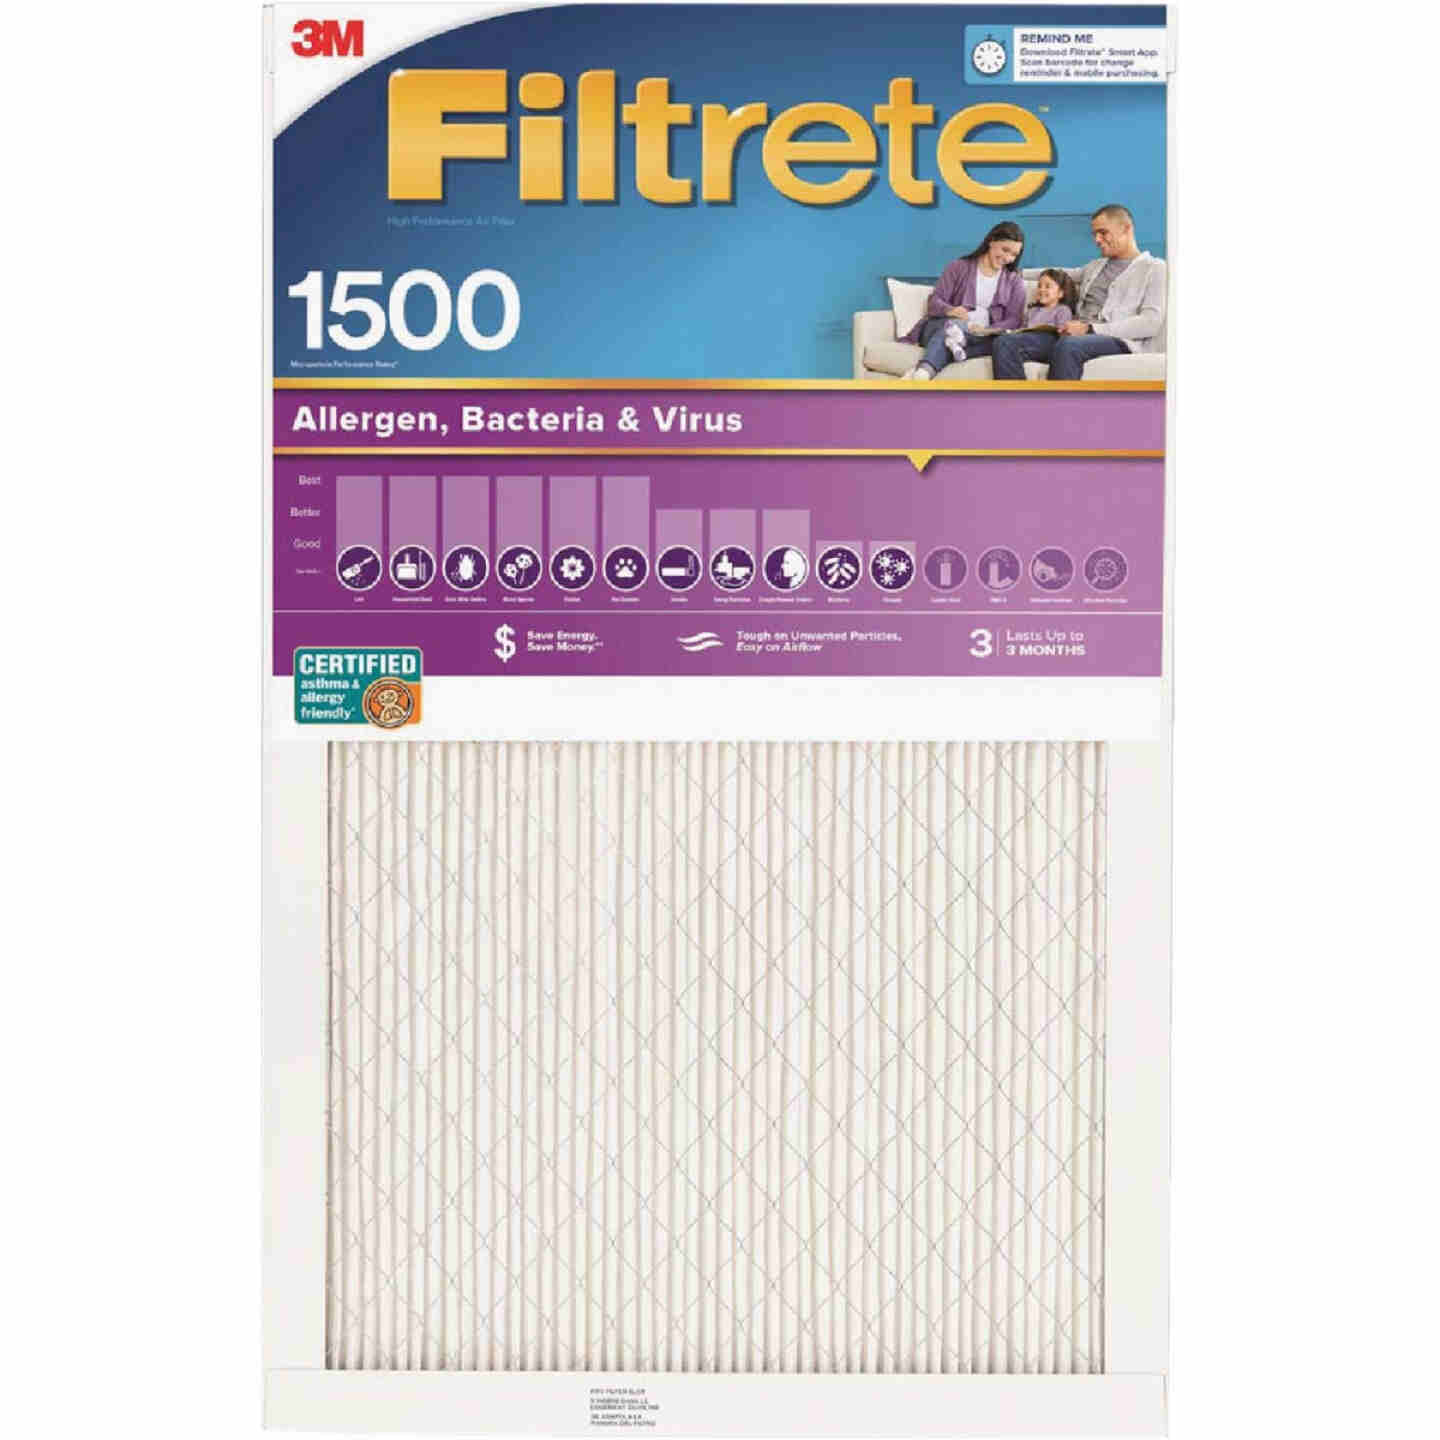 3M Filtrete 20 In. x 30 In. x 1 In. Ultra Allergen Healthy Living 1550 MPR Furnace Filter Image 1